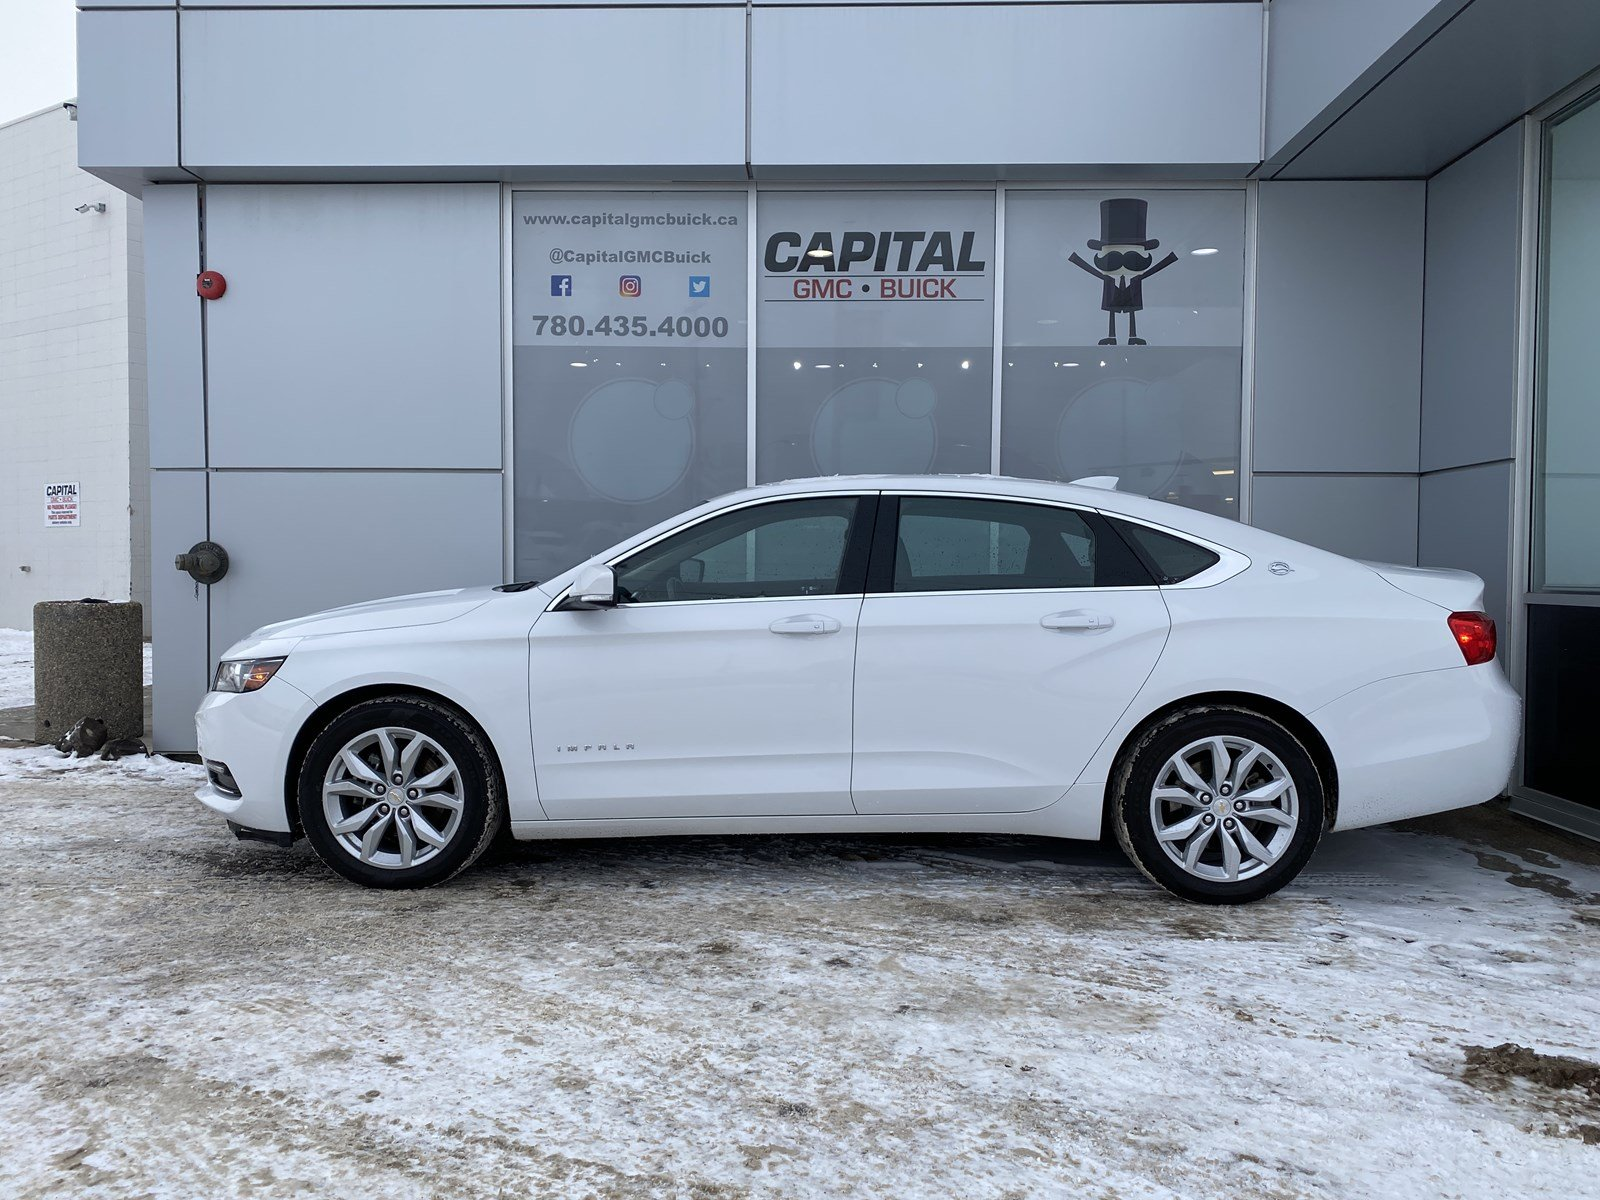 Certified Pre-Owned 2018 Chevrolet Impala LT LEATHER REMOTE START $55/WEEK PLUS GST